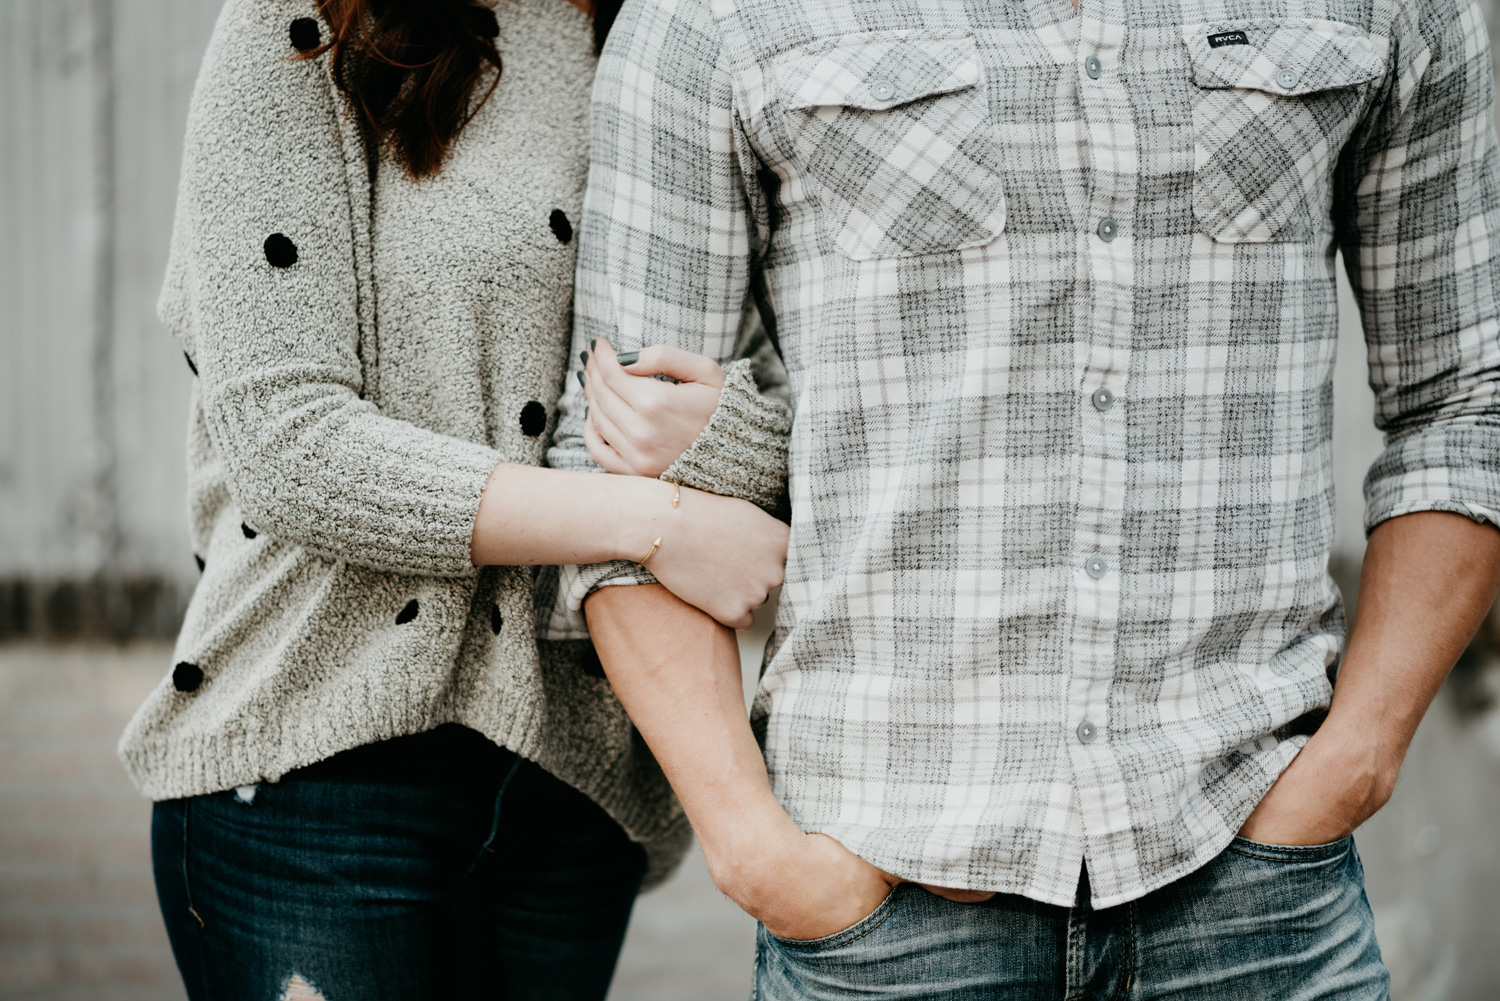 engaged couple holding each other hands in pockets